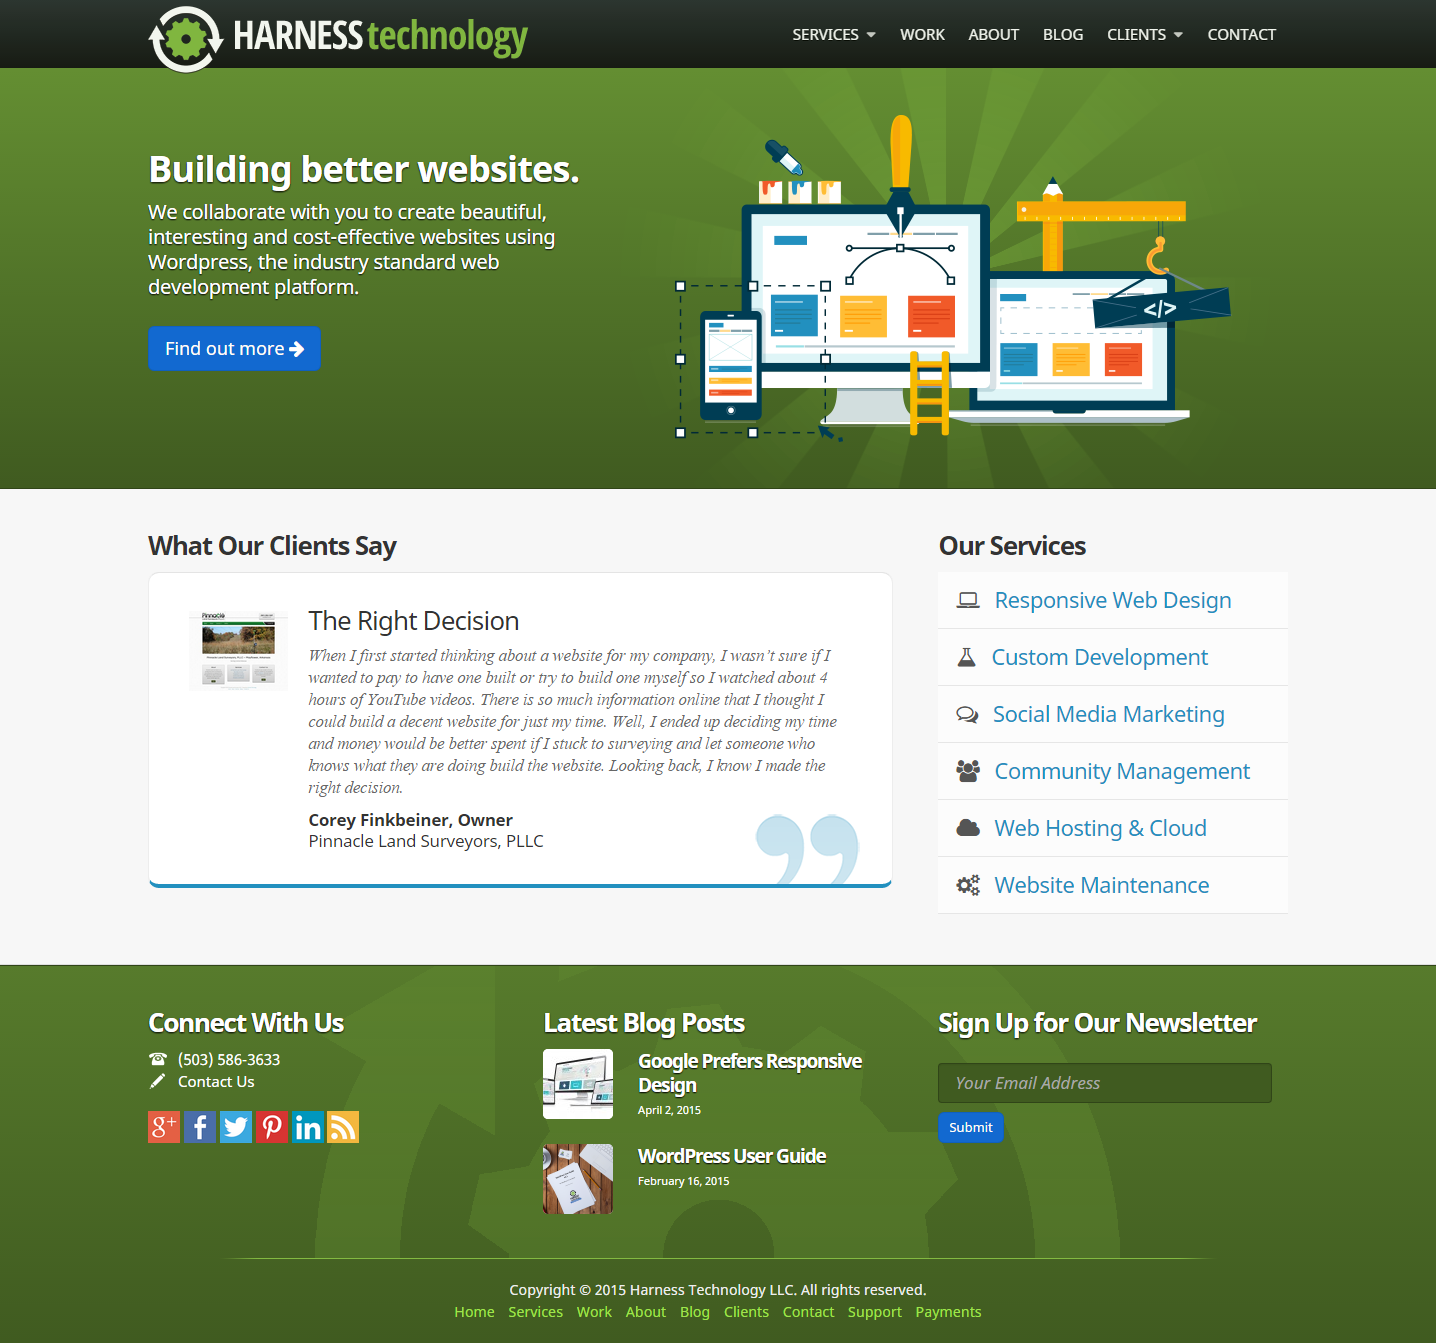 Site Created With Wp Jump Start 1 2 X Site Design By Wendell Harness I Wrangled Wpjs 1 2 Into This L Wordpress Website Design Web Design Wordpress Web Design